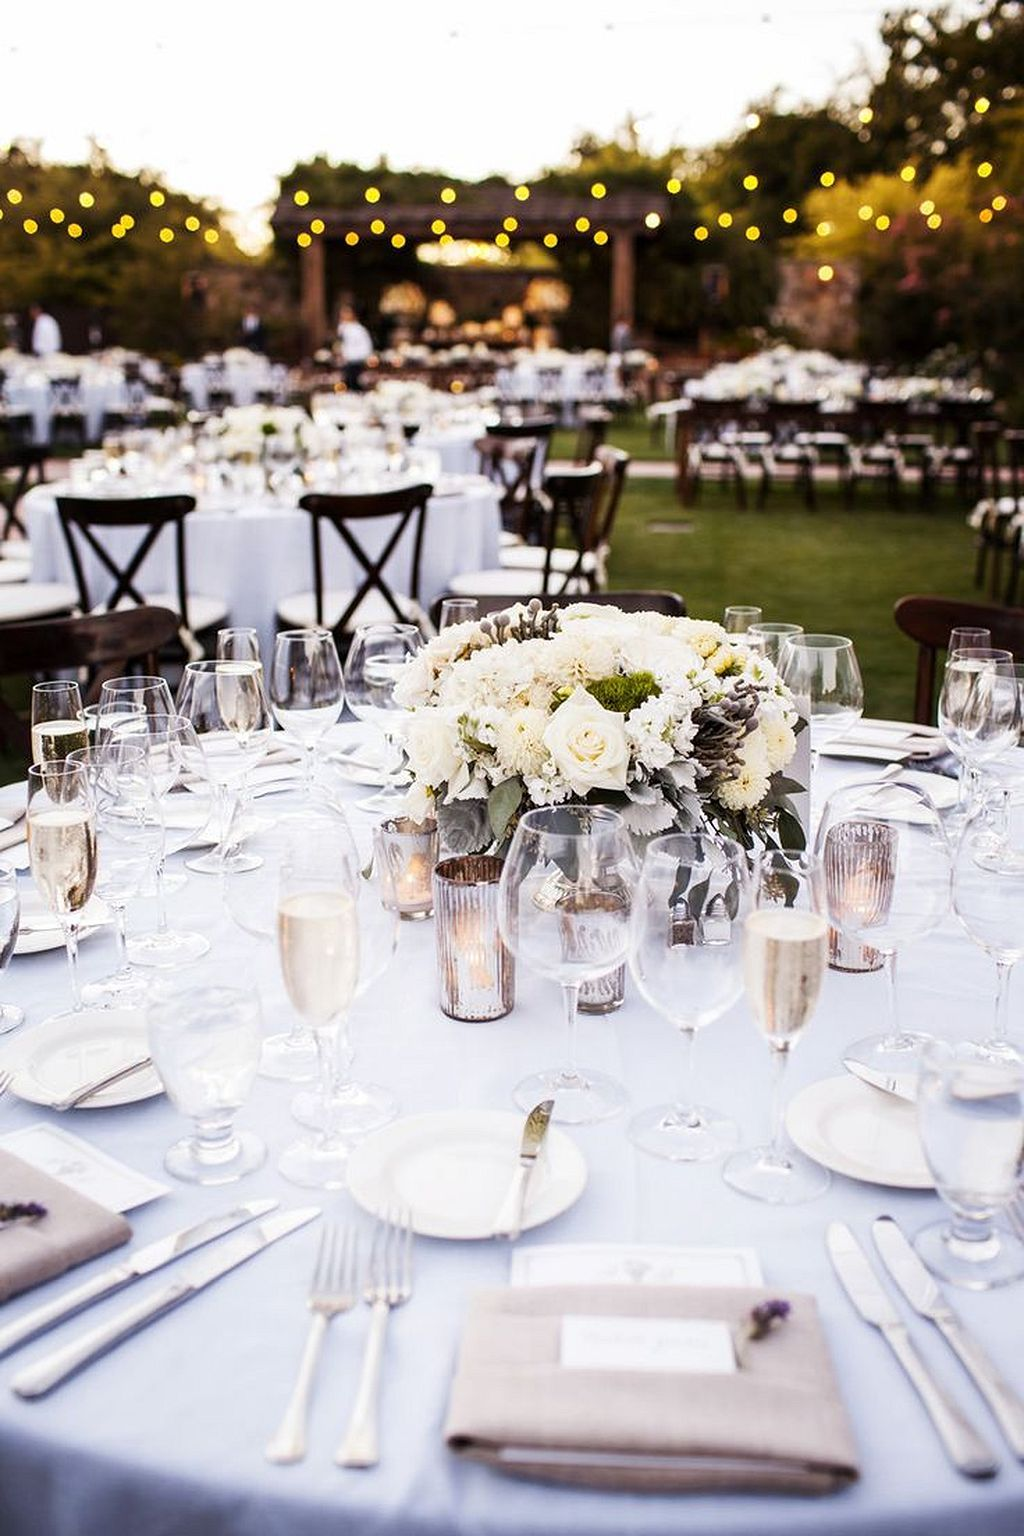 30+ Lovely Table Setting Ideas For Your Wedding | Table settings ...